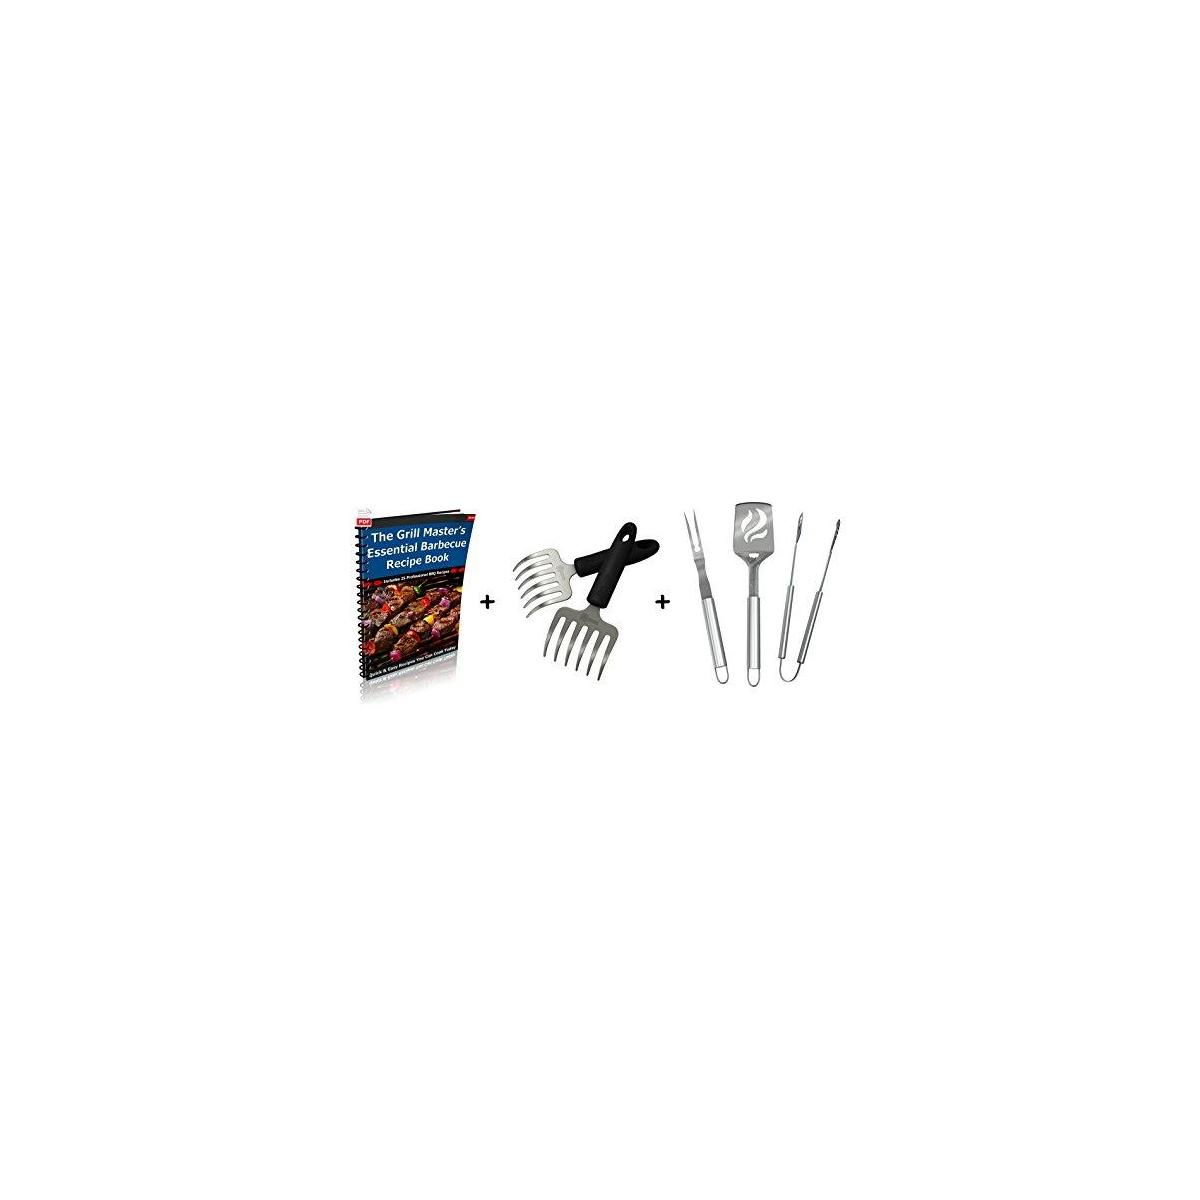 Pulled Pork Shredder Rakes + BBQ Grill Tools Set - Heavy Duty 20% Thicker Stainless Steel - Professional Grade Barbecue Accessories - 3 Piece Utensils Kit Includes Spatula Tongs & Fork